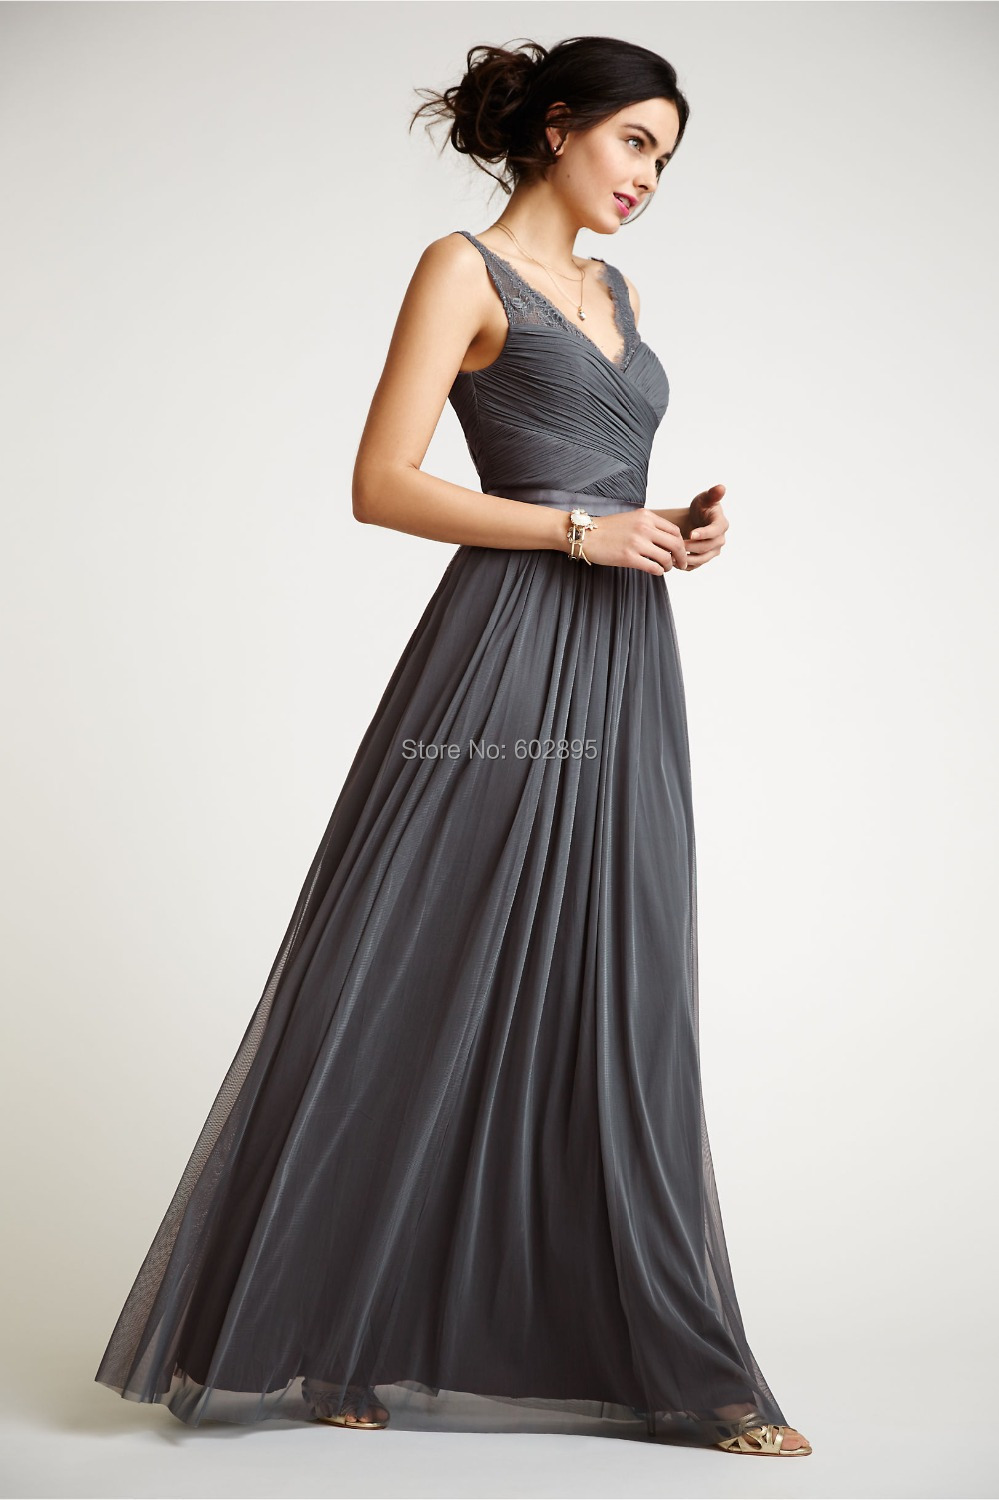 Elegant pleated chiffon lace v neck dark grey bridesmaid for Grey dress wedding guest